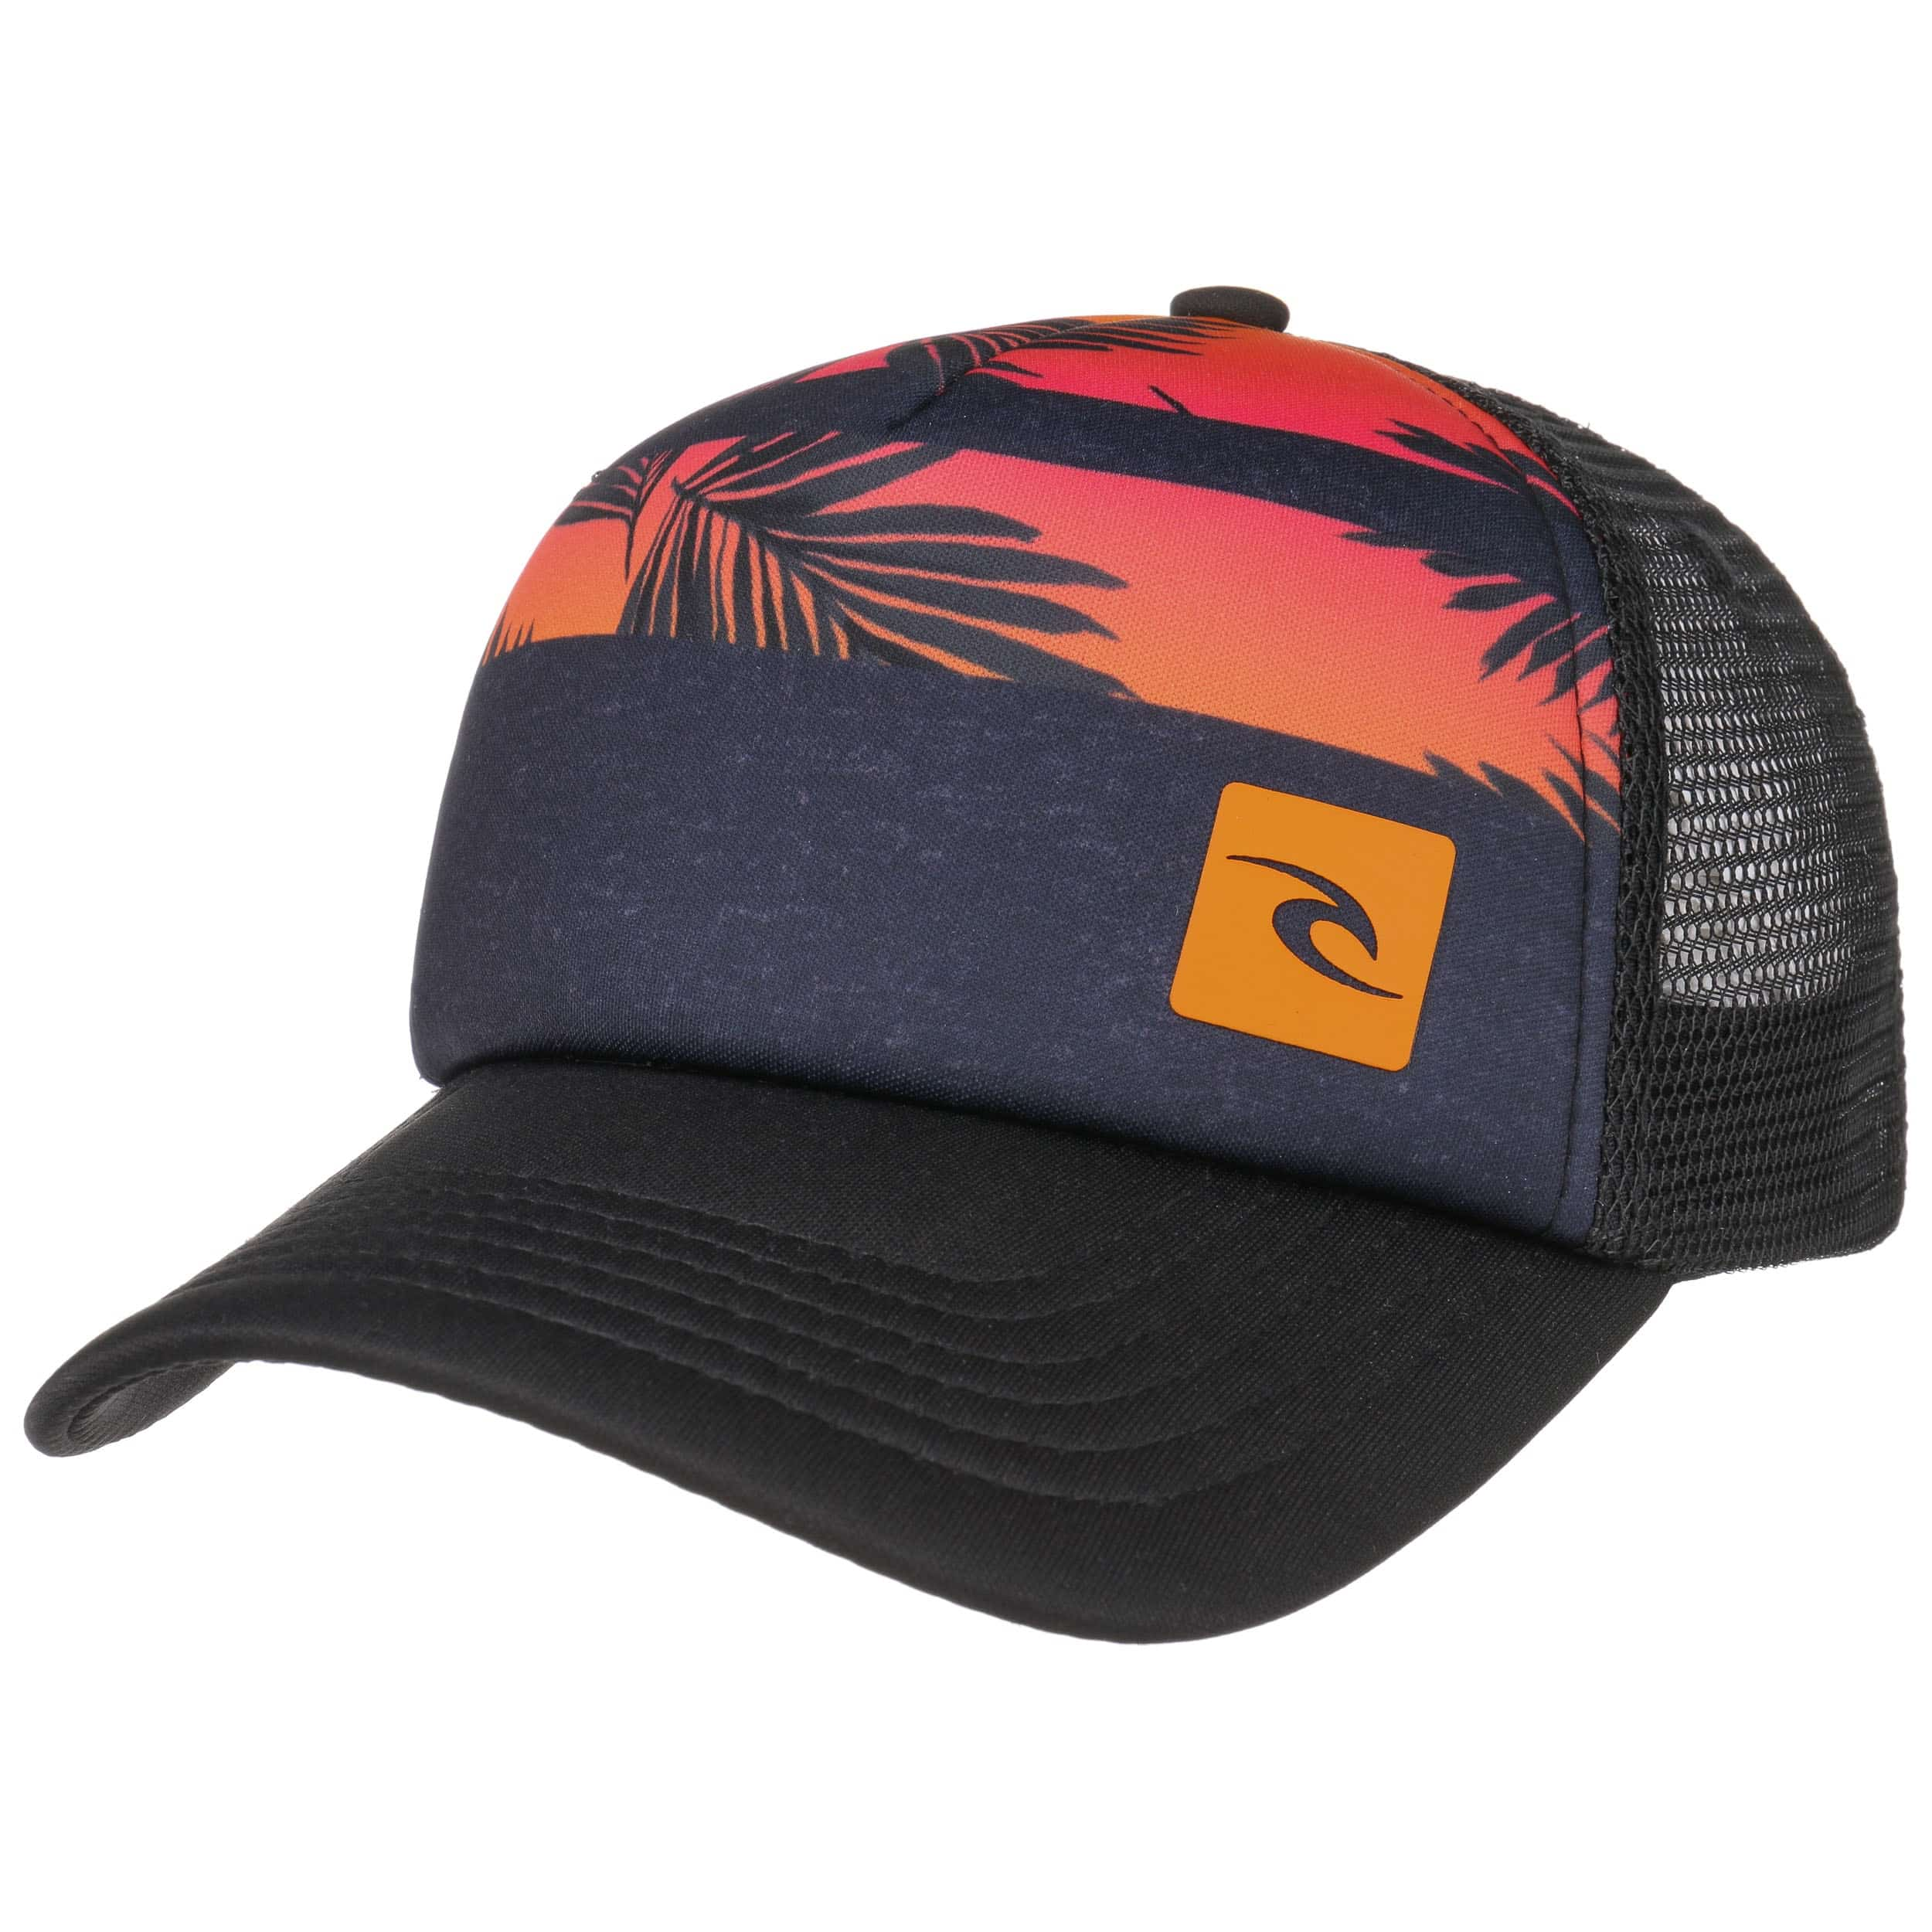 ... Kids Trucker Cap by Rip Curl - black-red 6 ... 21d5ad4f0777